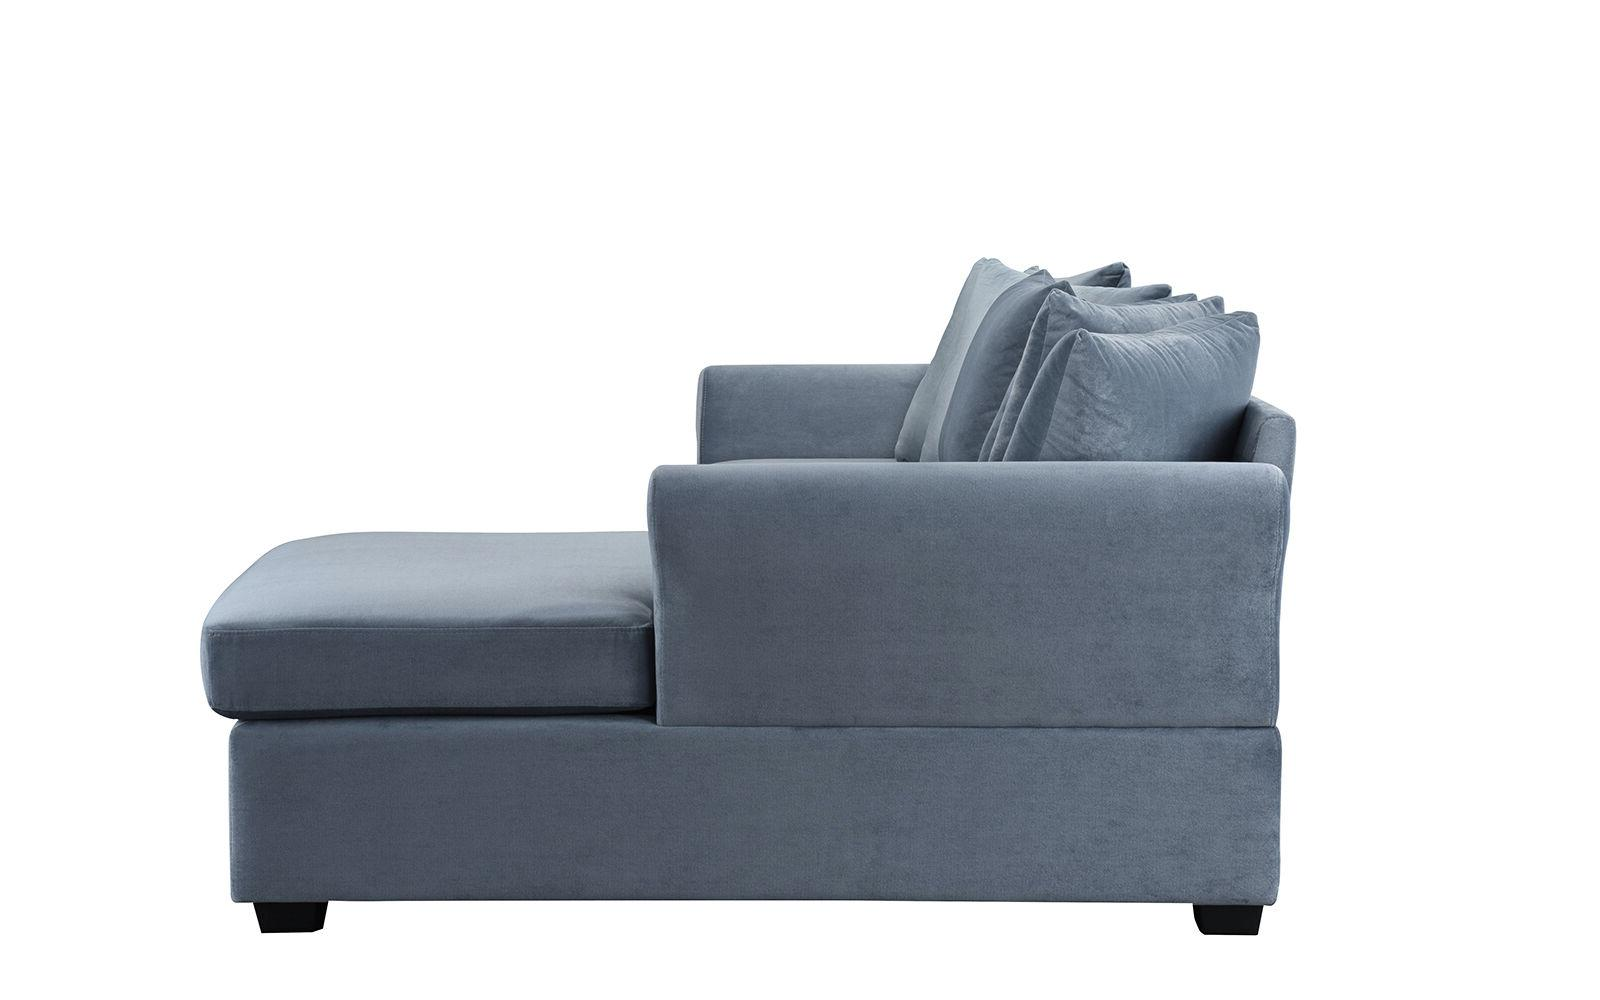 Velvet Sofa Classic Couch Chaise